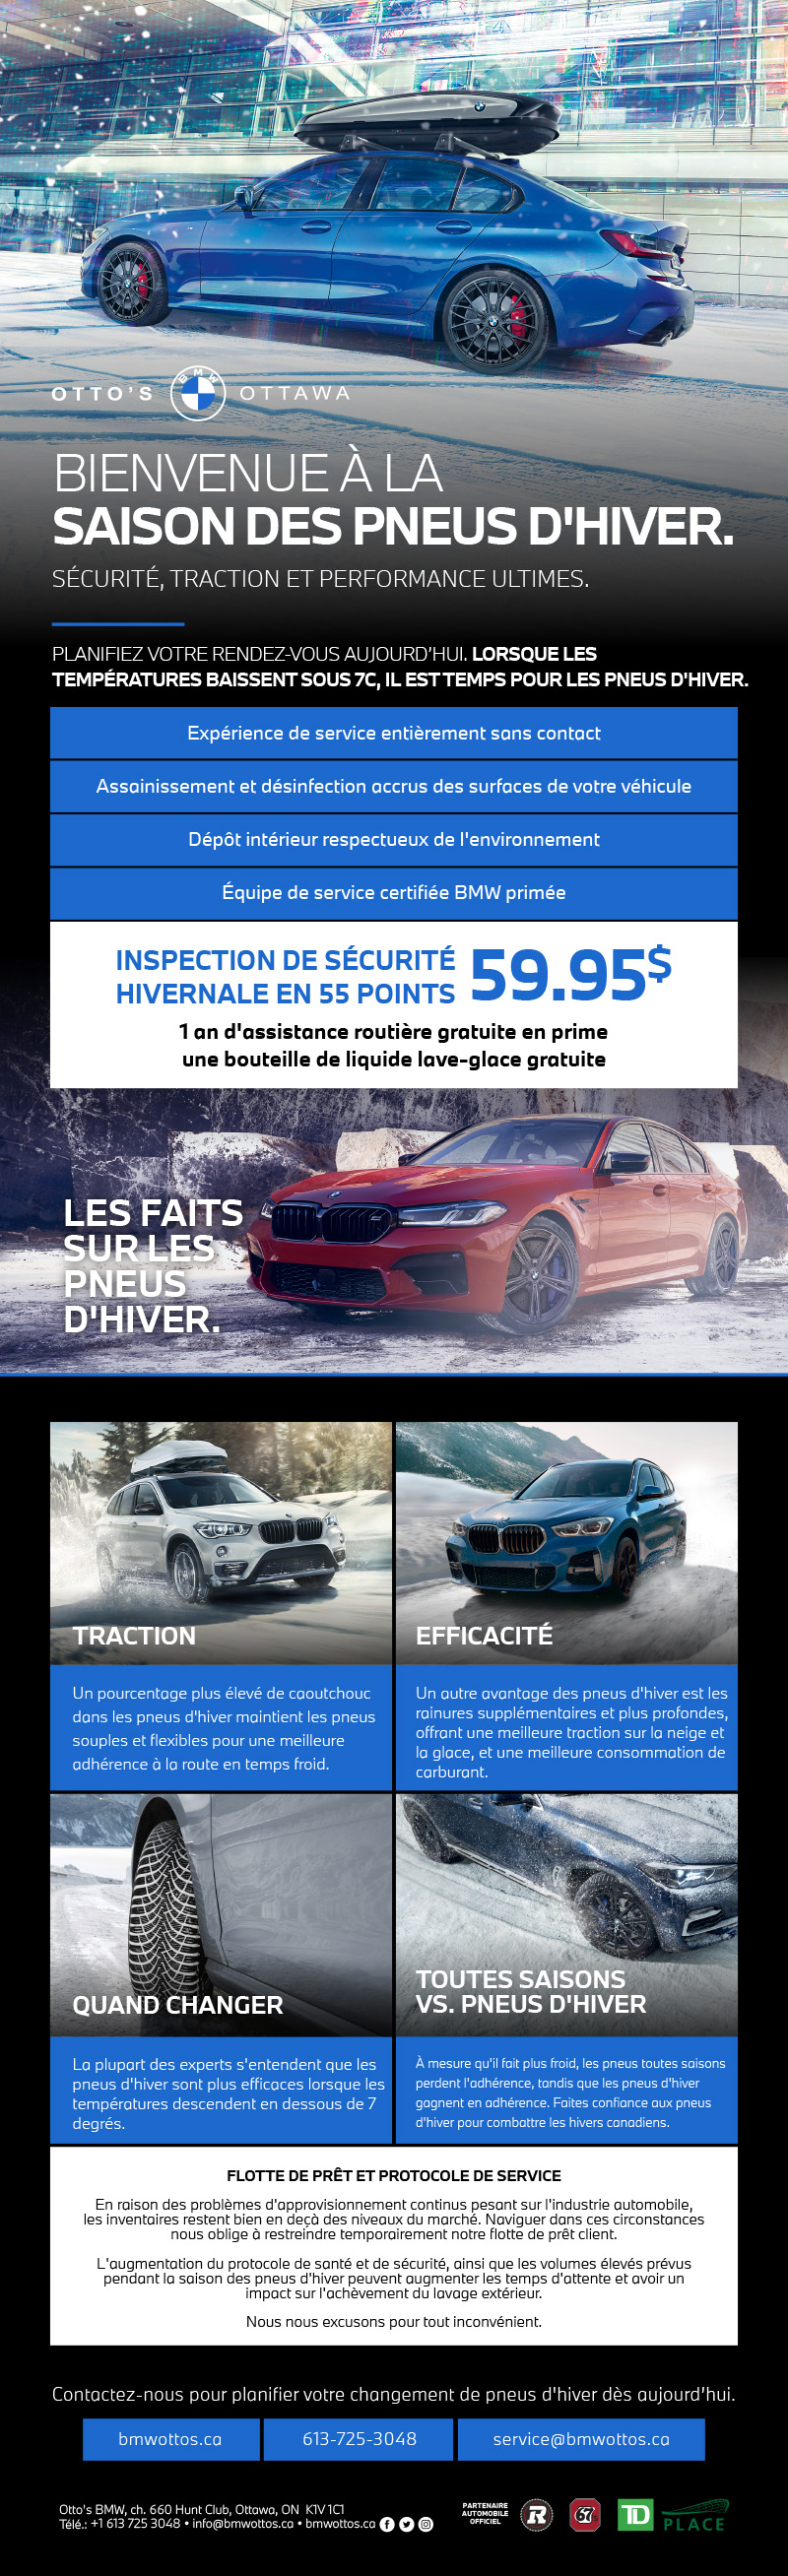 Bmw Winter Tire Fw2021 Emailer 2